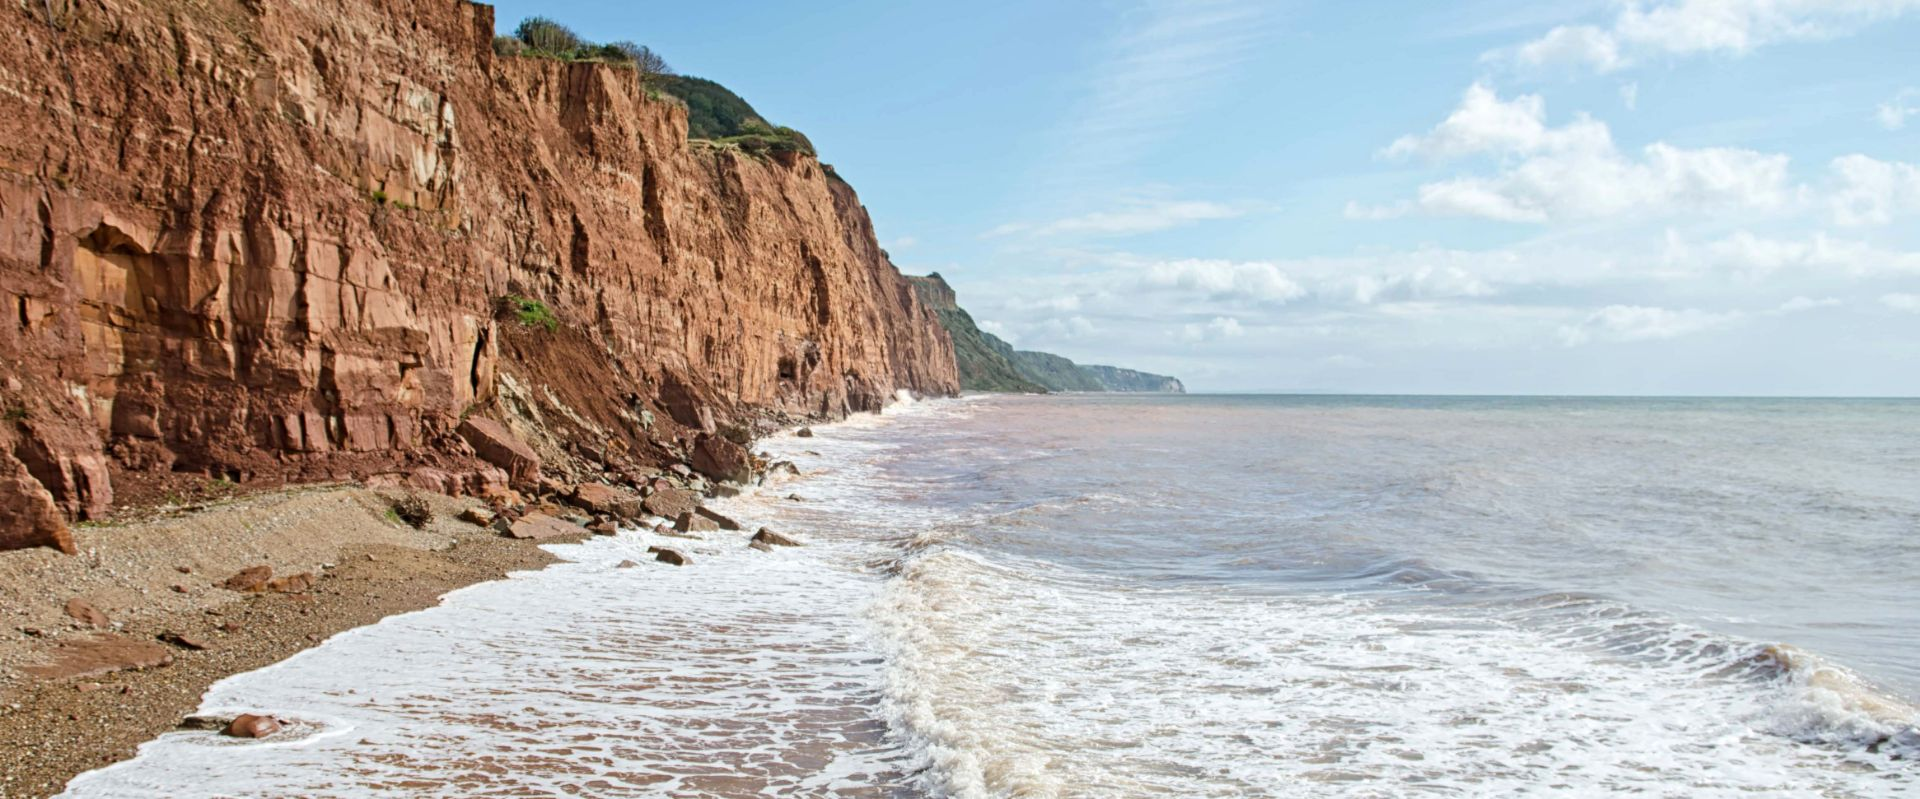 The red sandstone cliffs at Sidmouth